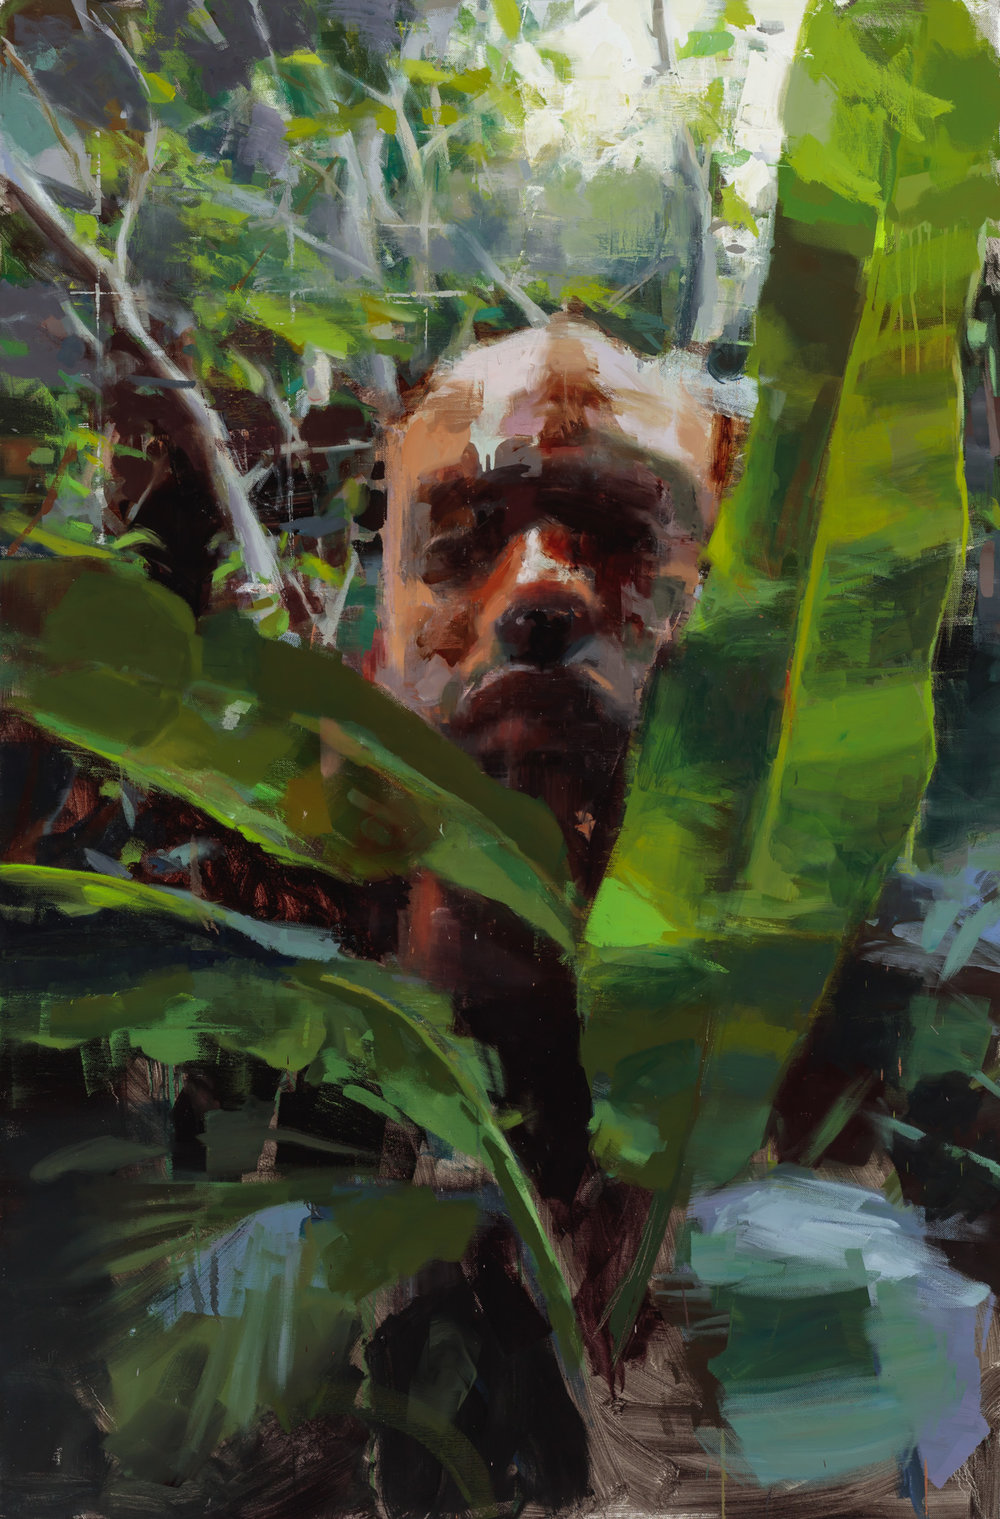 """In the middle of the Jungle""  2017, 72"" x 54"" (183 x 137 cm) oil on linen."